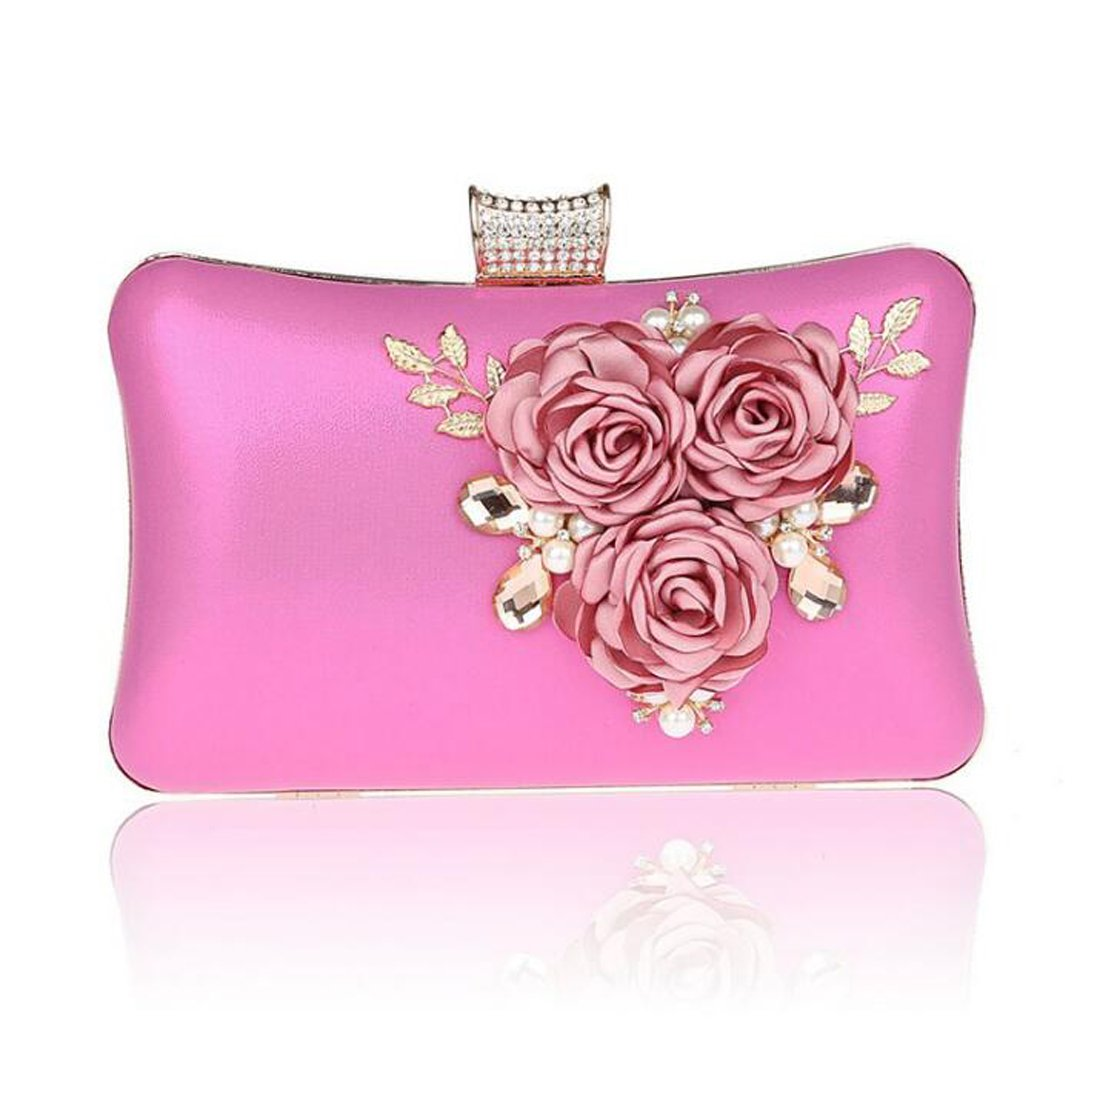 EPLAZA Women Large Capacity Flora Evening Clutch Bags Wedding Party Purse Handbags Wallet (rose red) by EPLAZA (Image #1)